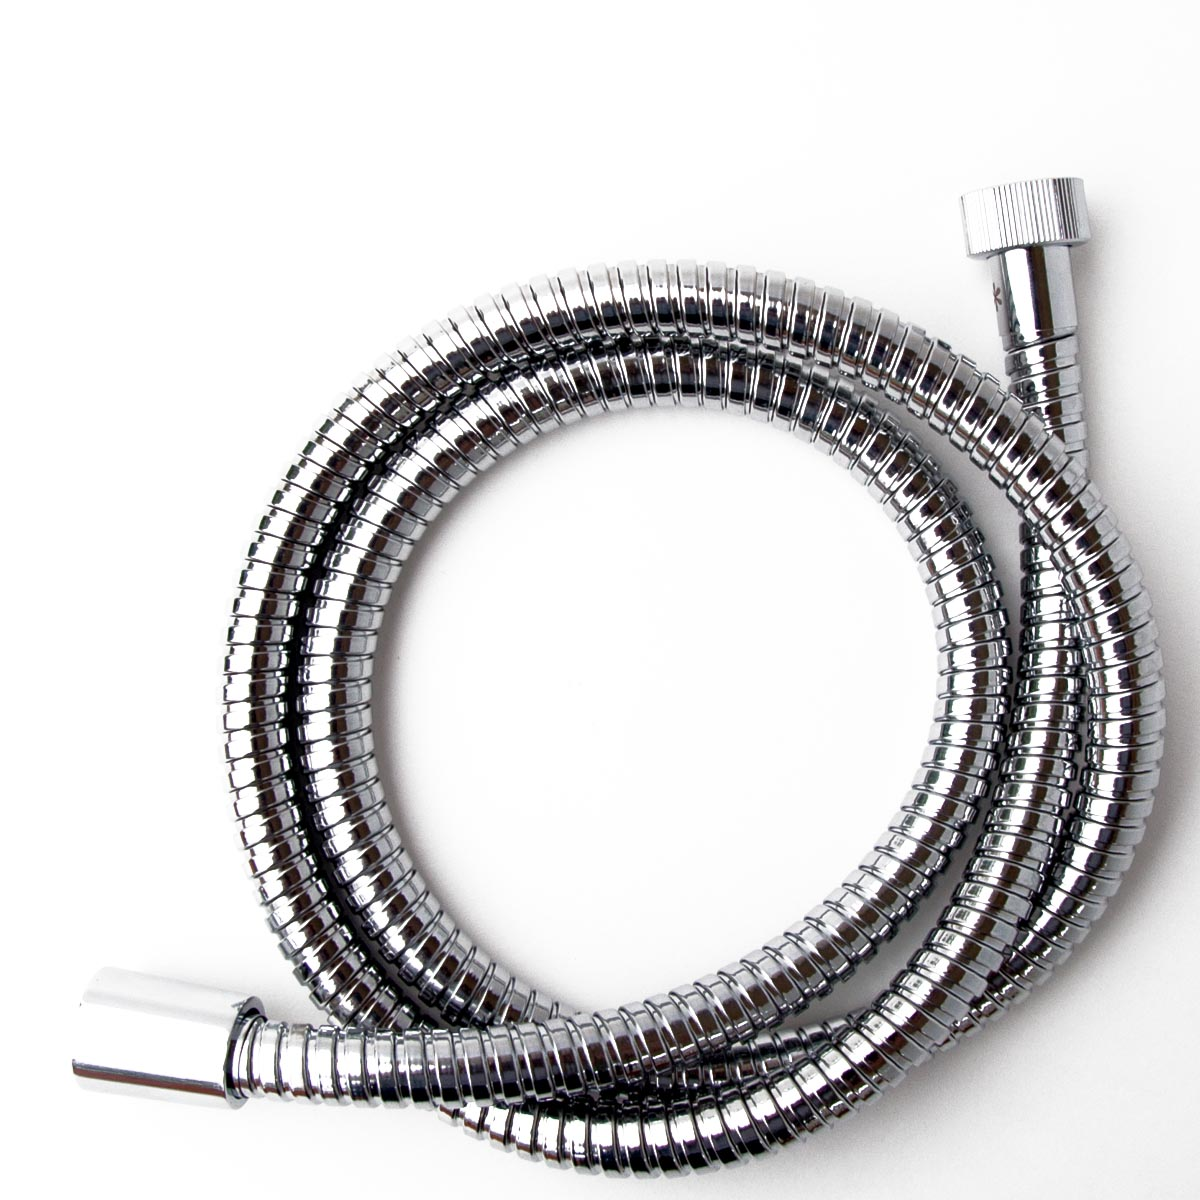 Muslim Shower Hose - Nadeef